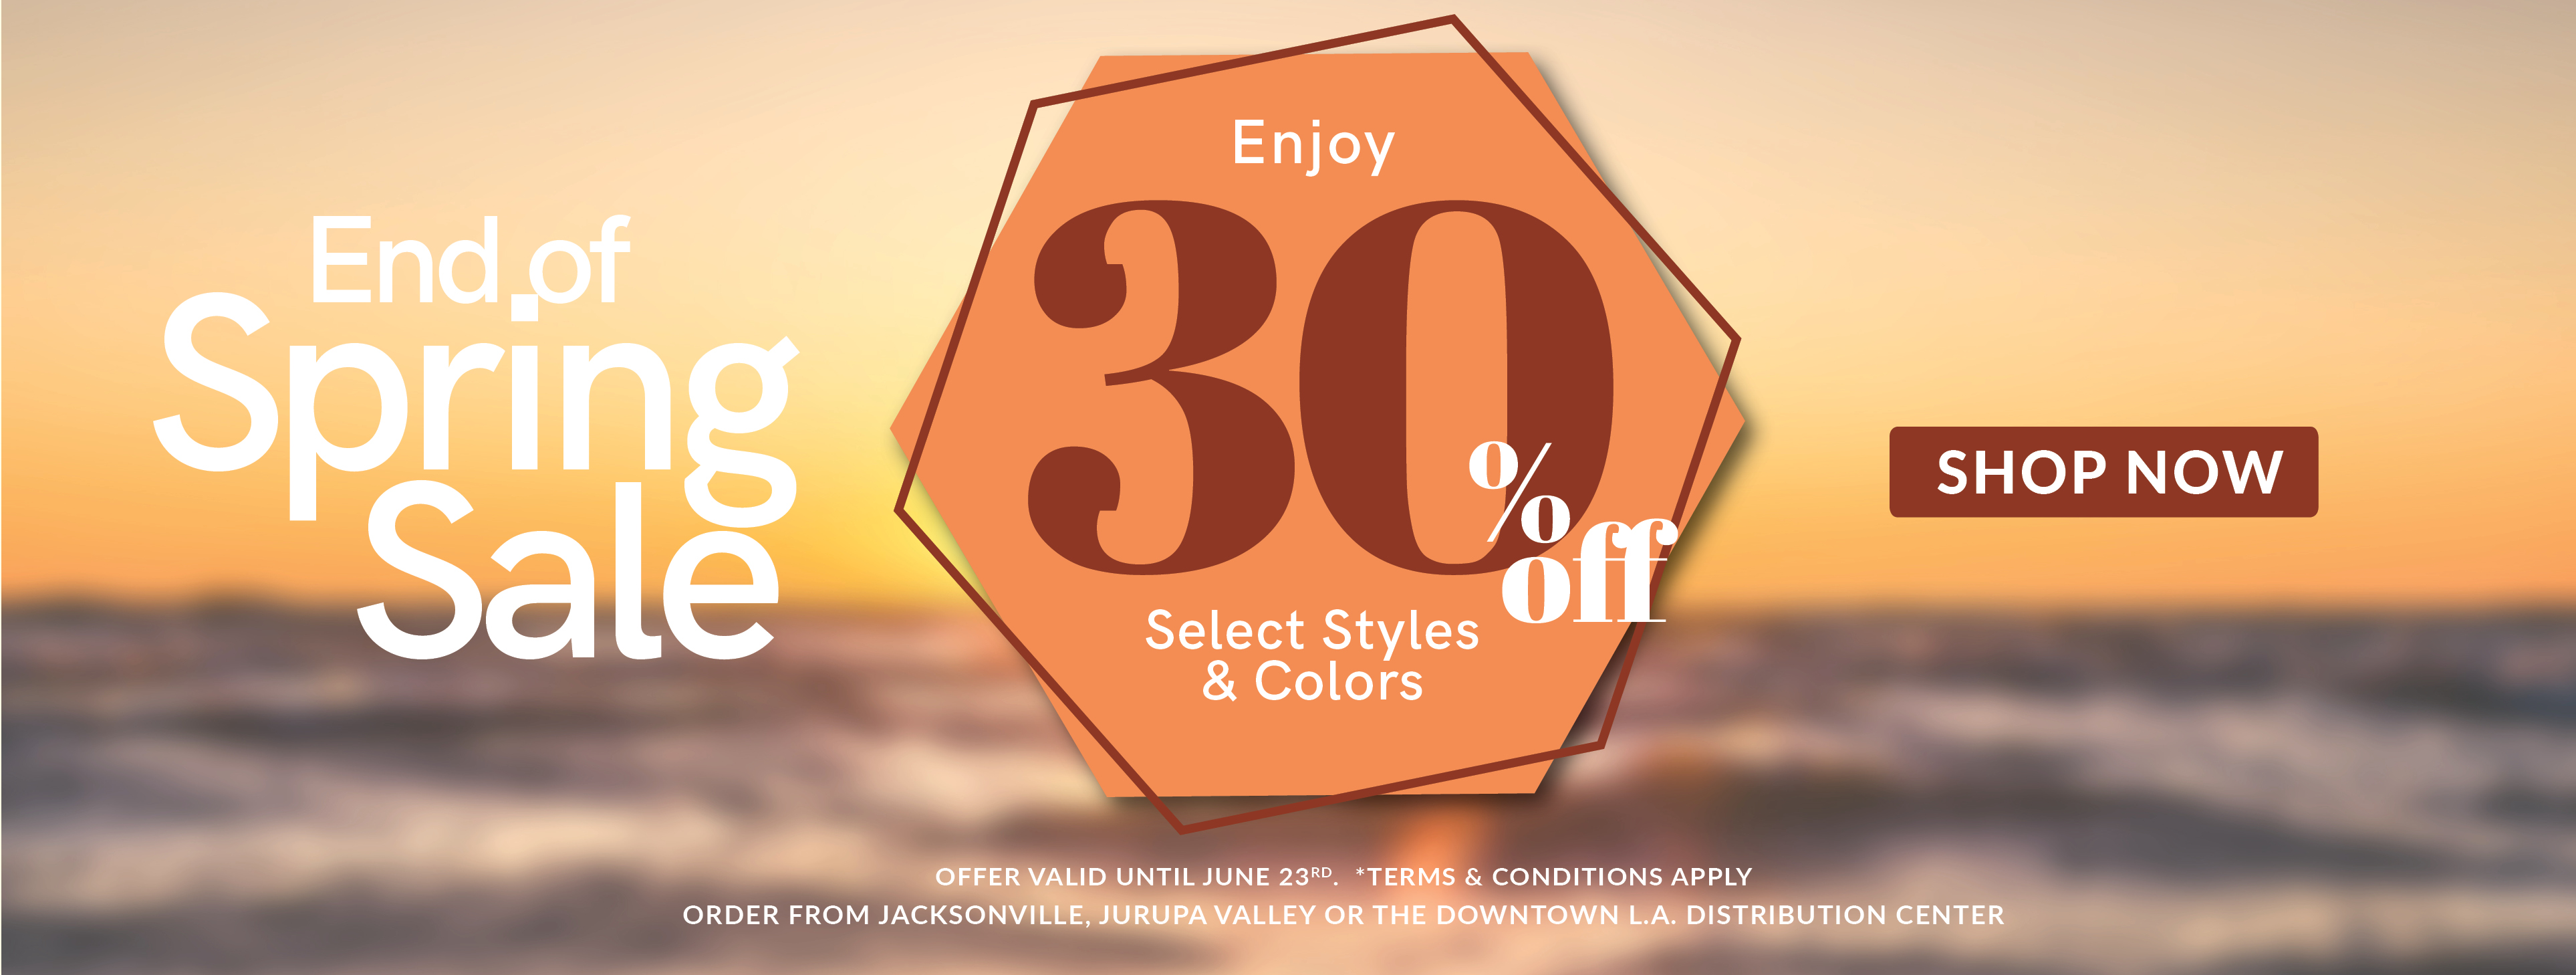 Shop now 30% Spring Sale on selected styles and colors